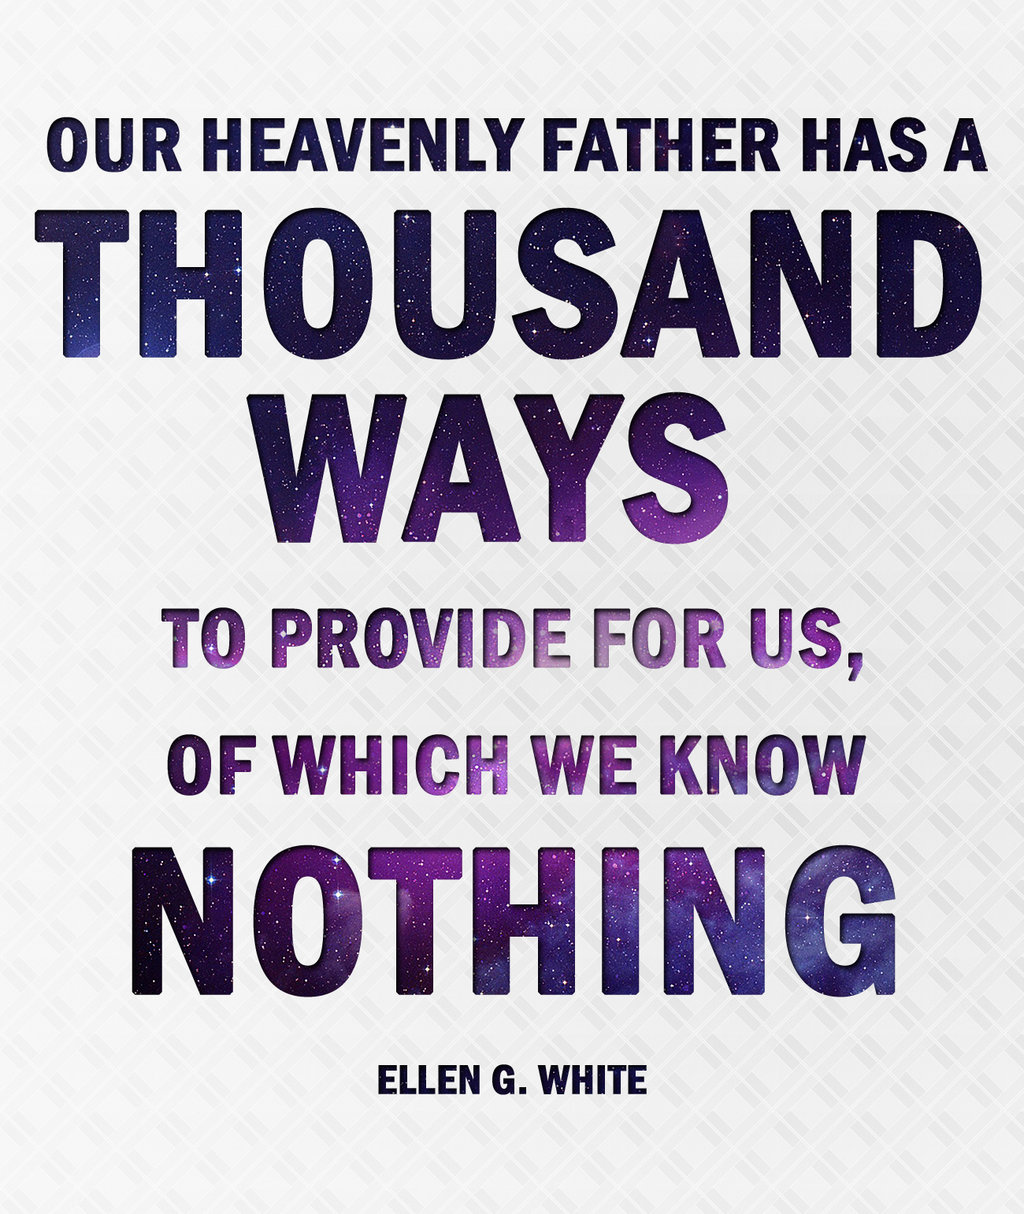 Heavenly Father Thousand Ways Provide Ellen G White Daily Quotes Sayings Pictures